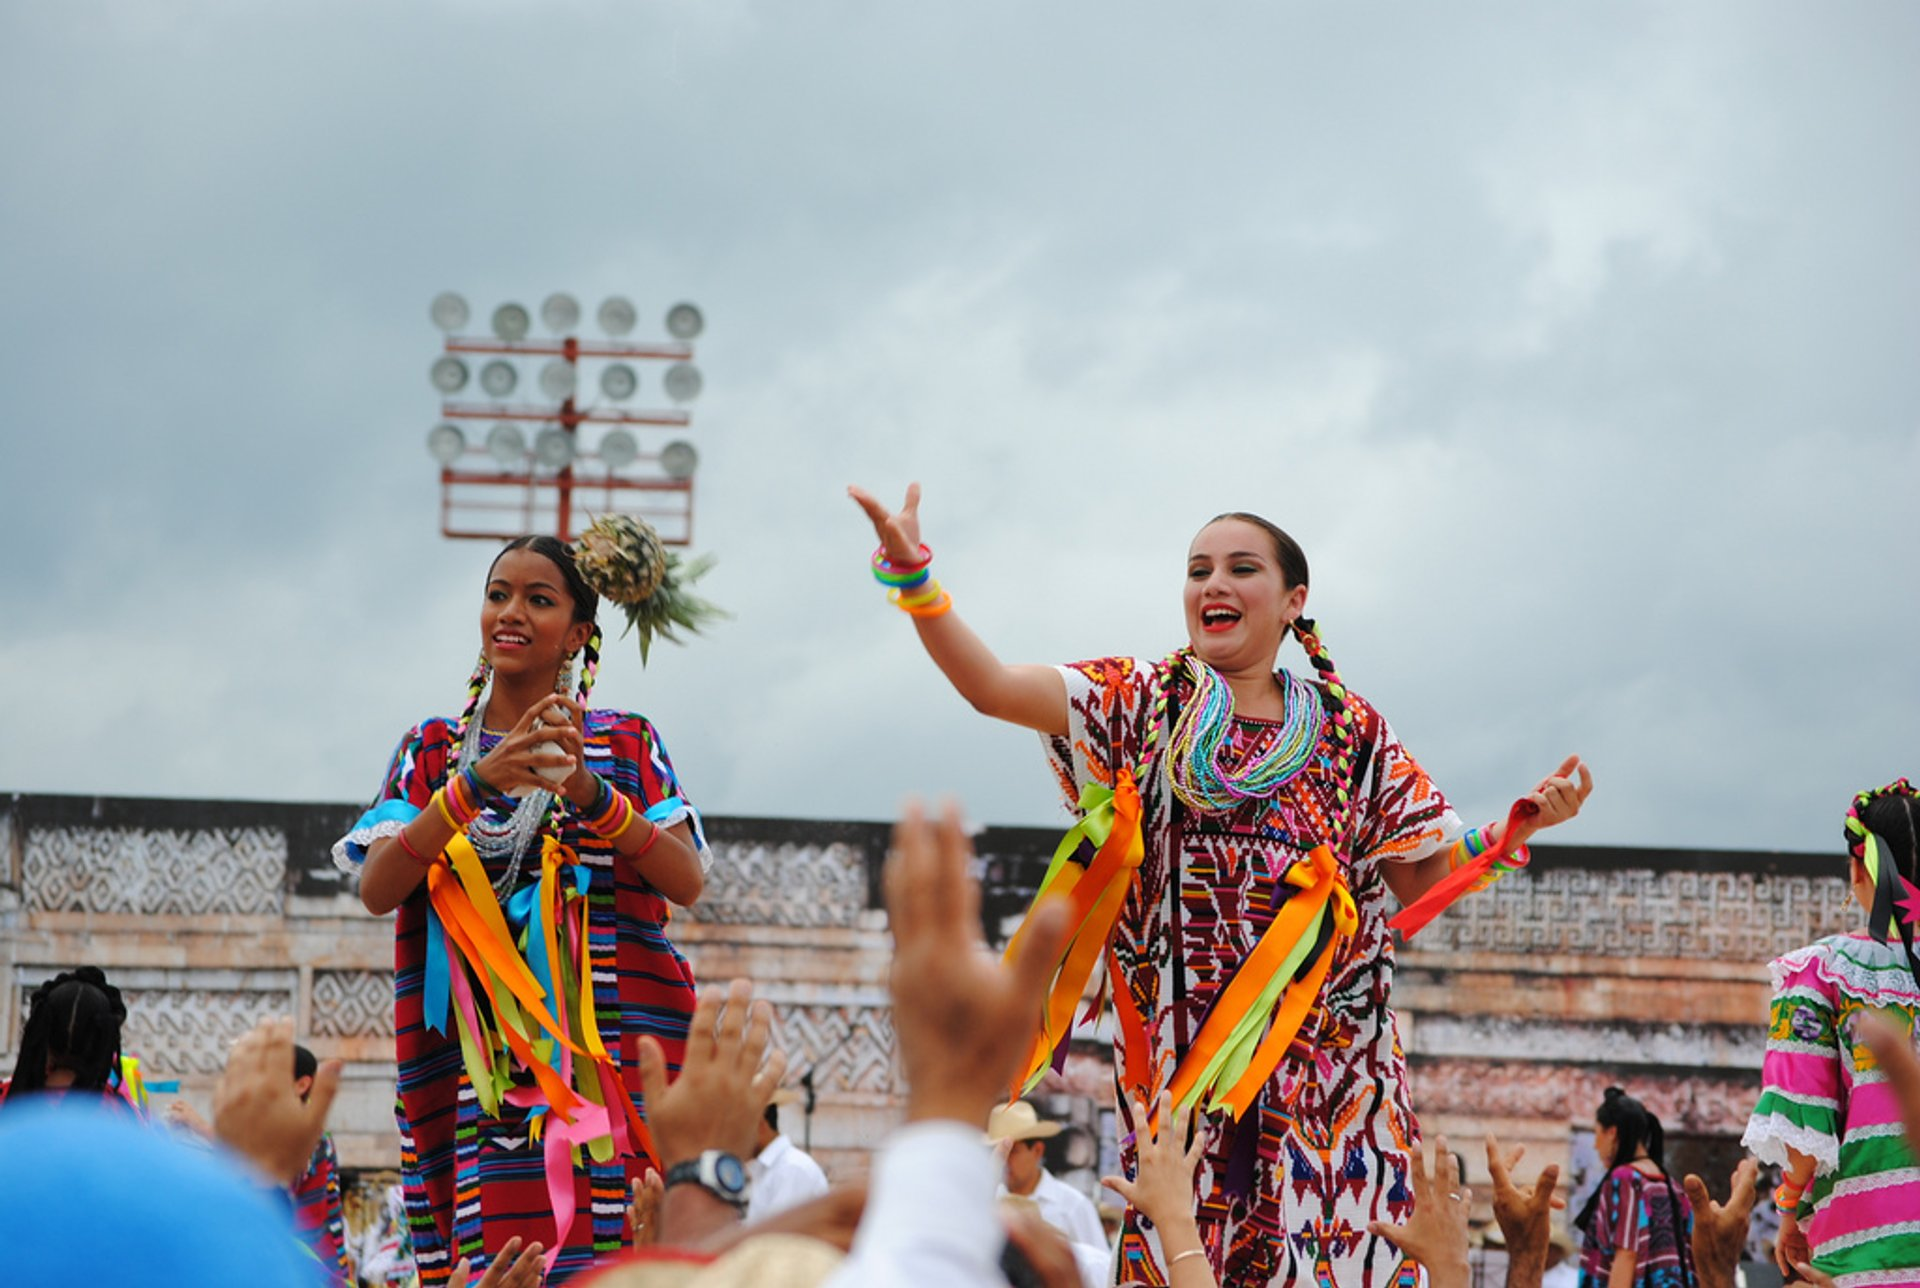 Best time to see Guelaguetza Festival in Mexico 2020